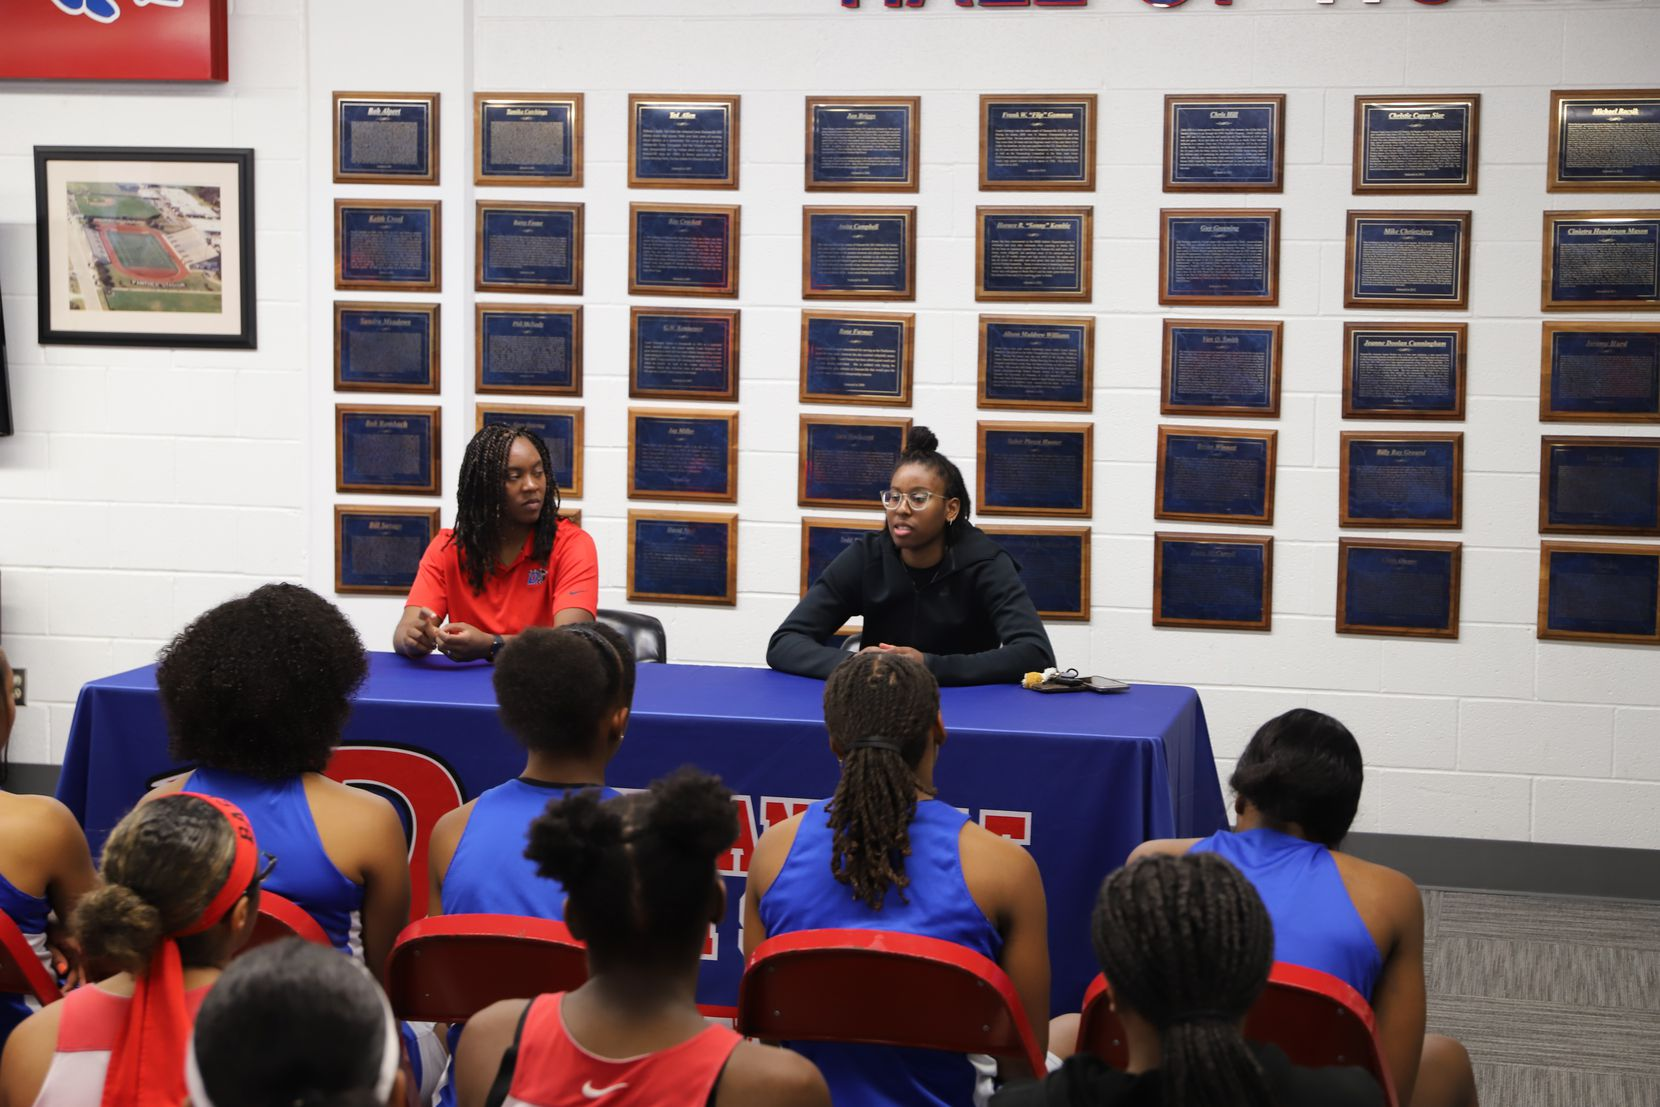 Ariel Atkins, a member of the 2012 and 2013 state championship teams at Duncanville High School, returned to the school to speak to members of the basketball team about her experiences in the WNBA.  She plays for the WNBA champion Washington Mystics.